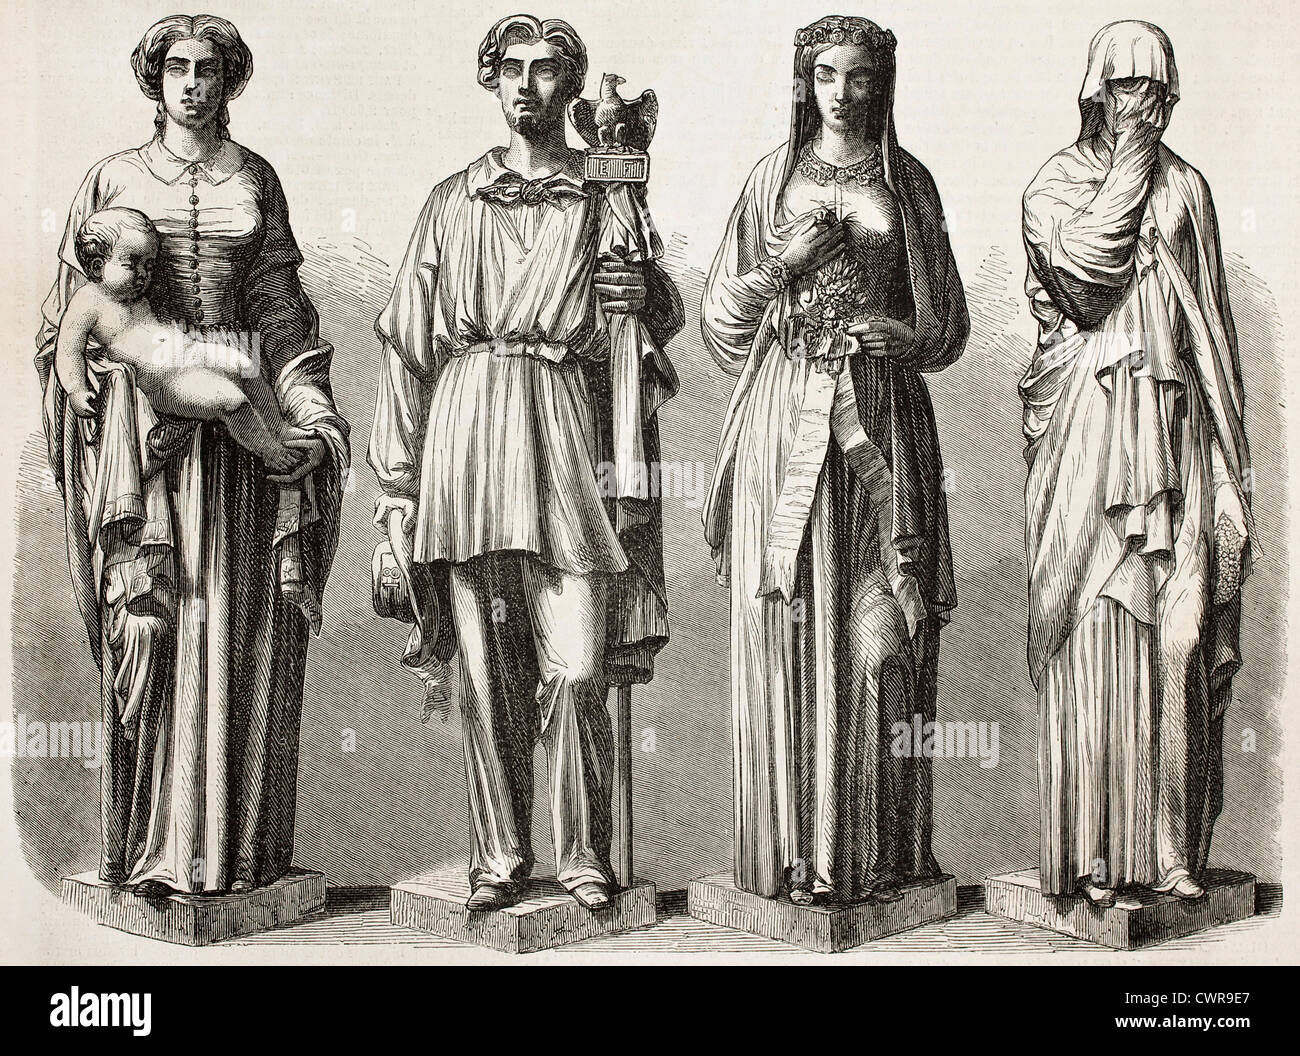 Four statues depicting four ages - Stock Image